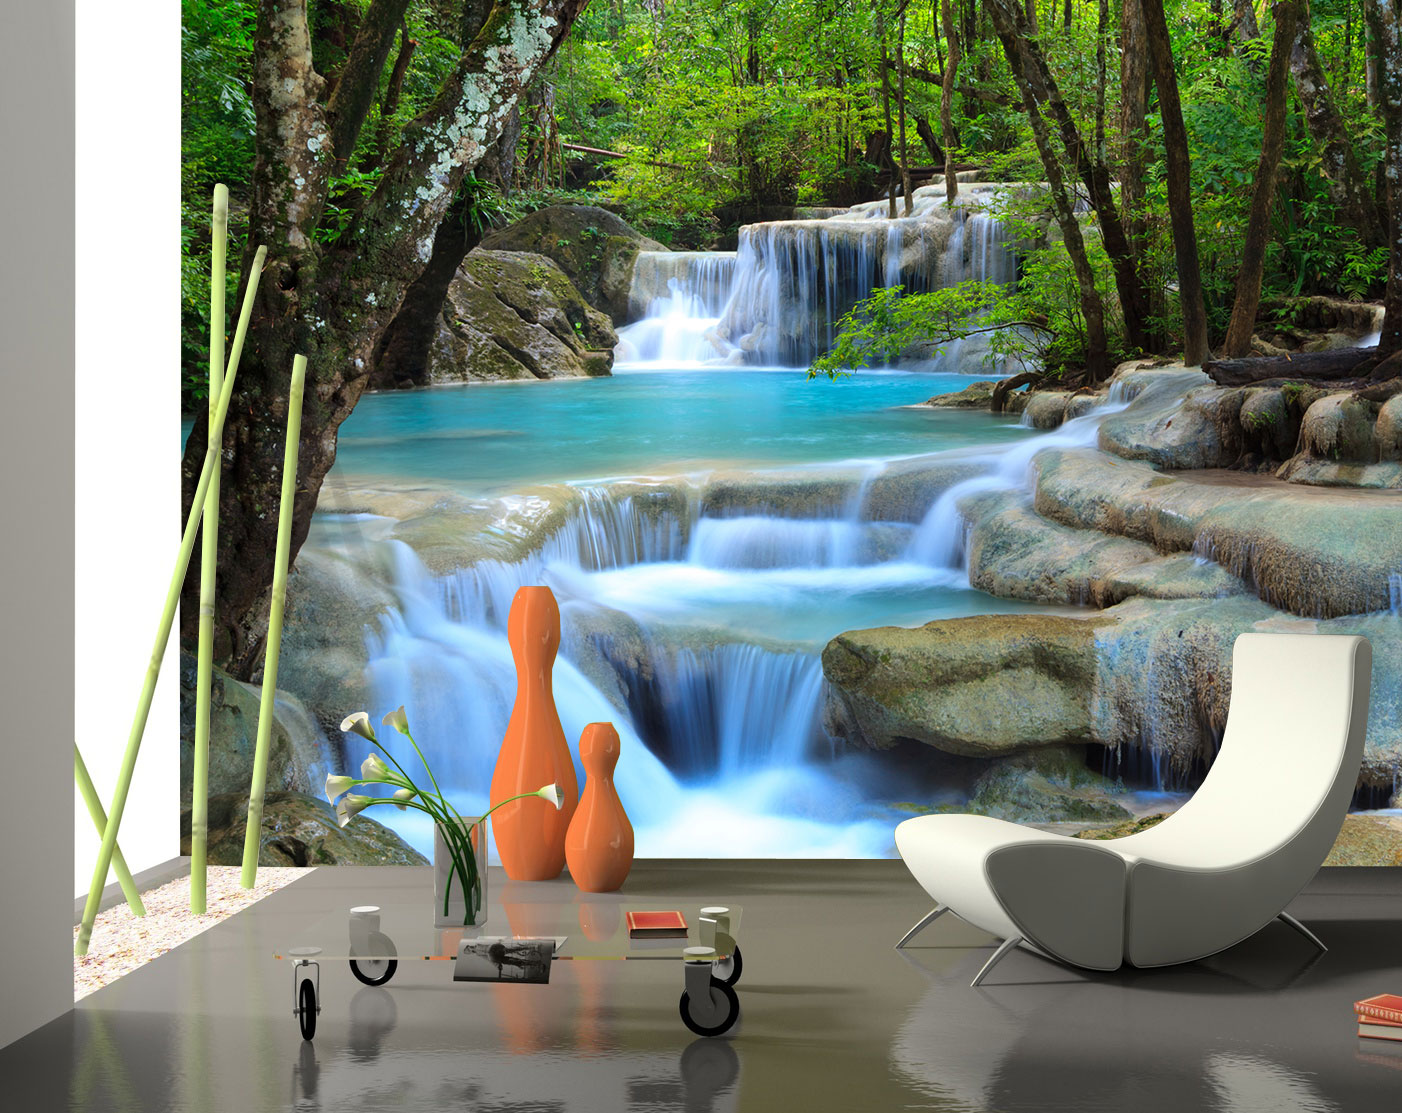 fototapete wasserfall im wald tapete xxl wandbild vliestapete ebay. Black Bedroom Furniture Sets. Home Design Ideas